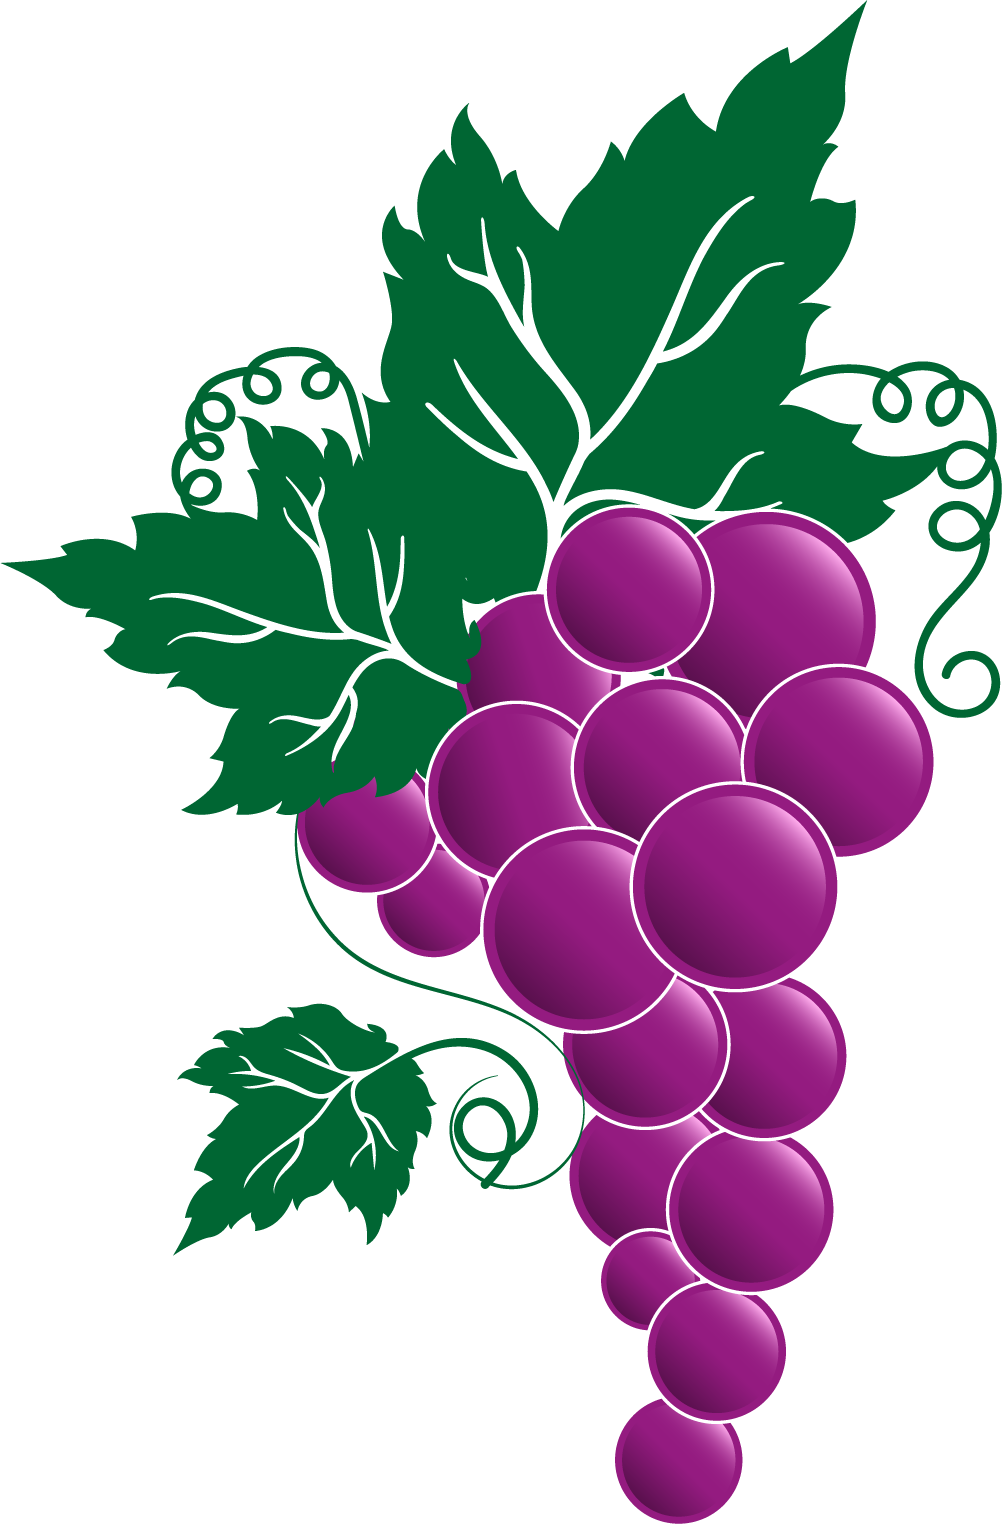 jpg royalty free download Grapevine clipart grape stomping. Png transparent free images